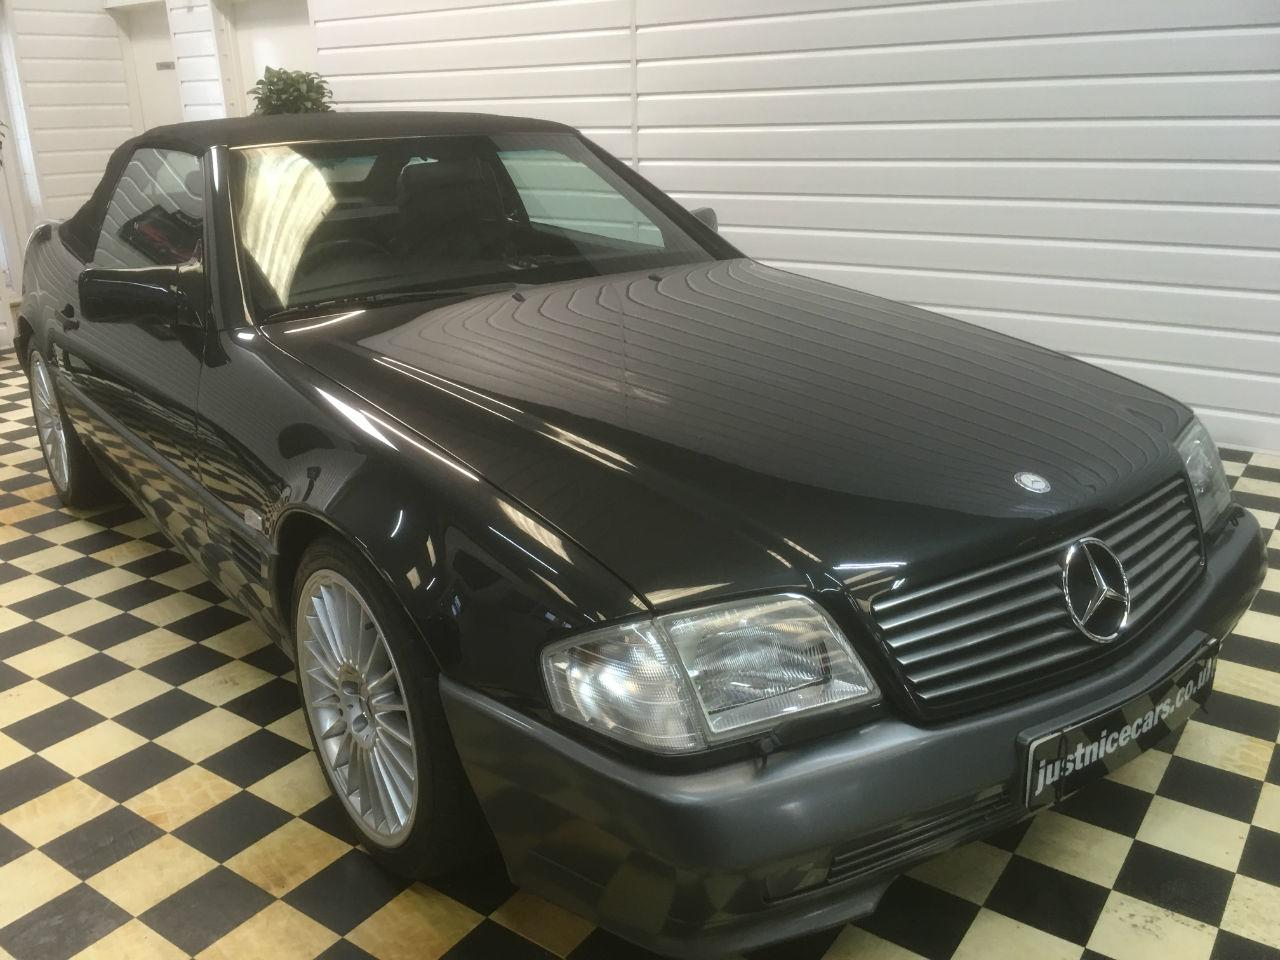 Mercedes-Benz SL Class 5.0 SOLD GOING TO SCUNTHORPE Convertible Petrol Grey